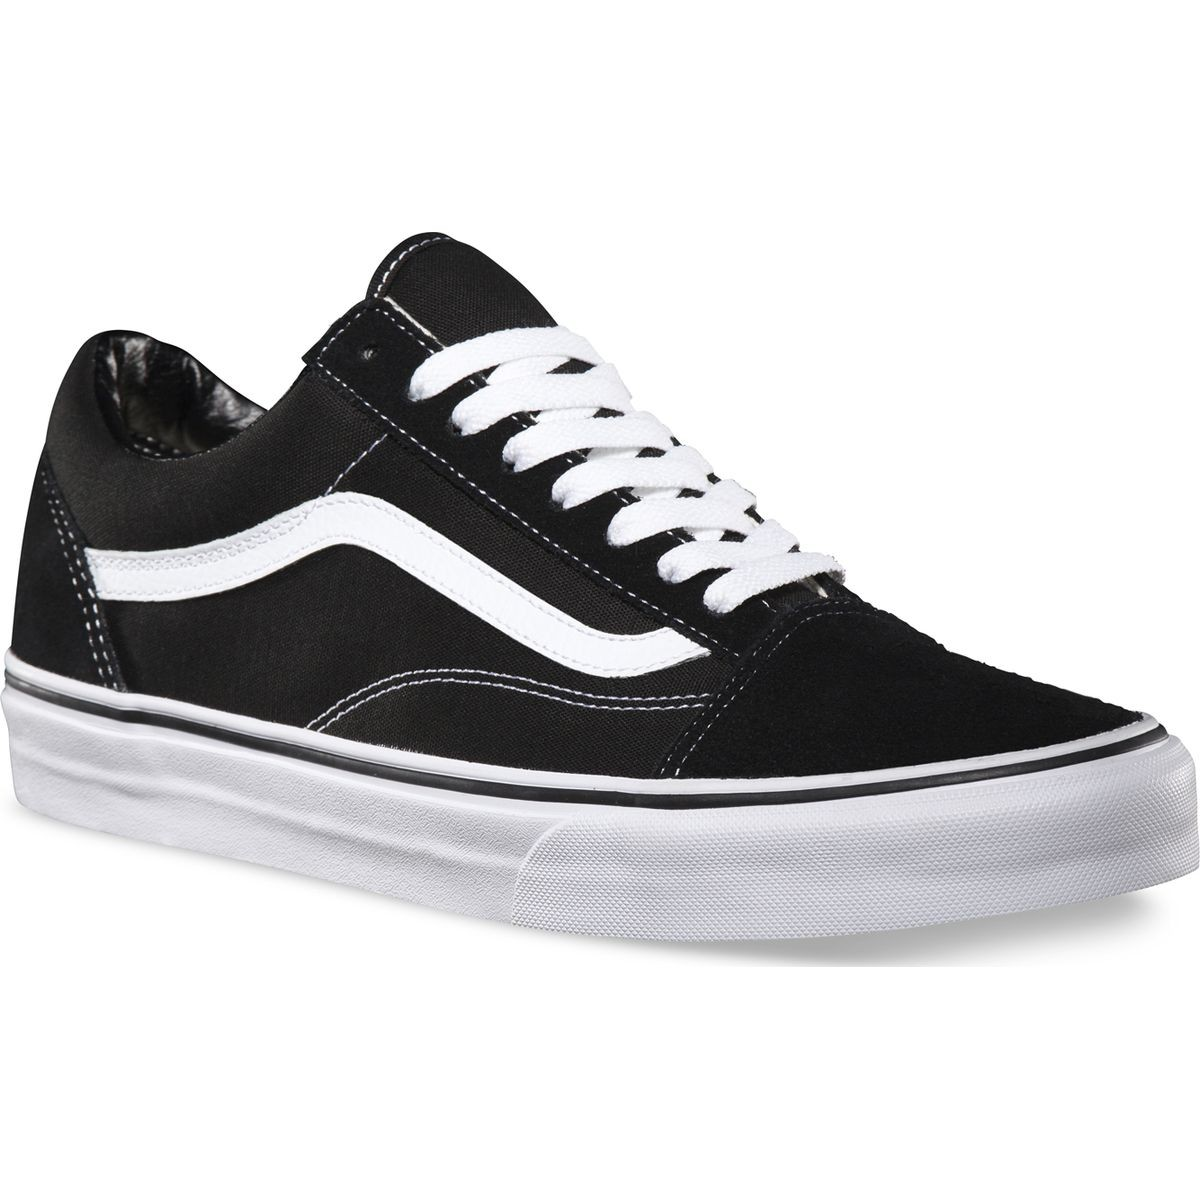 aa35ace6c57 Vans Old Skool Core Classic Shoes - Black White - 8.5